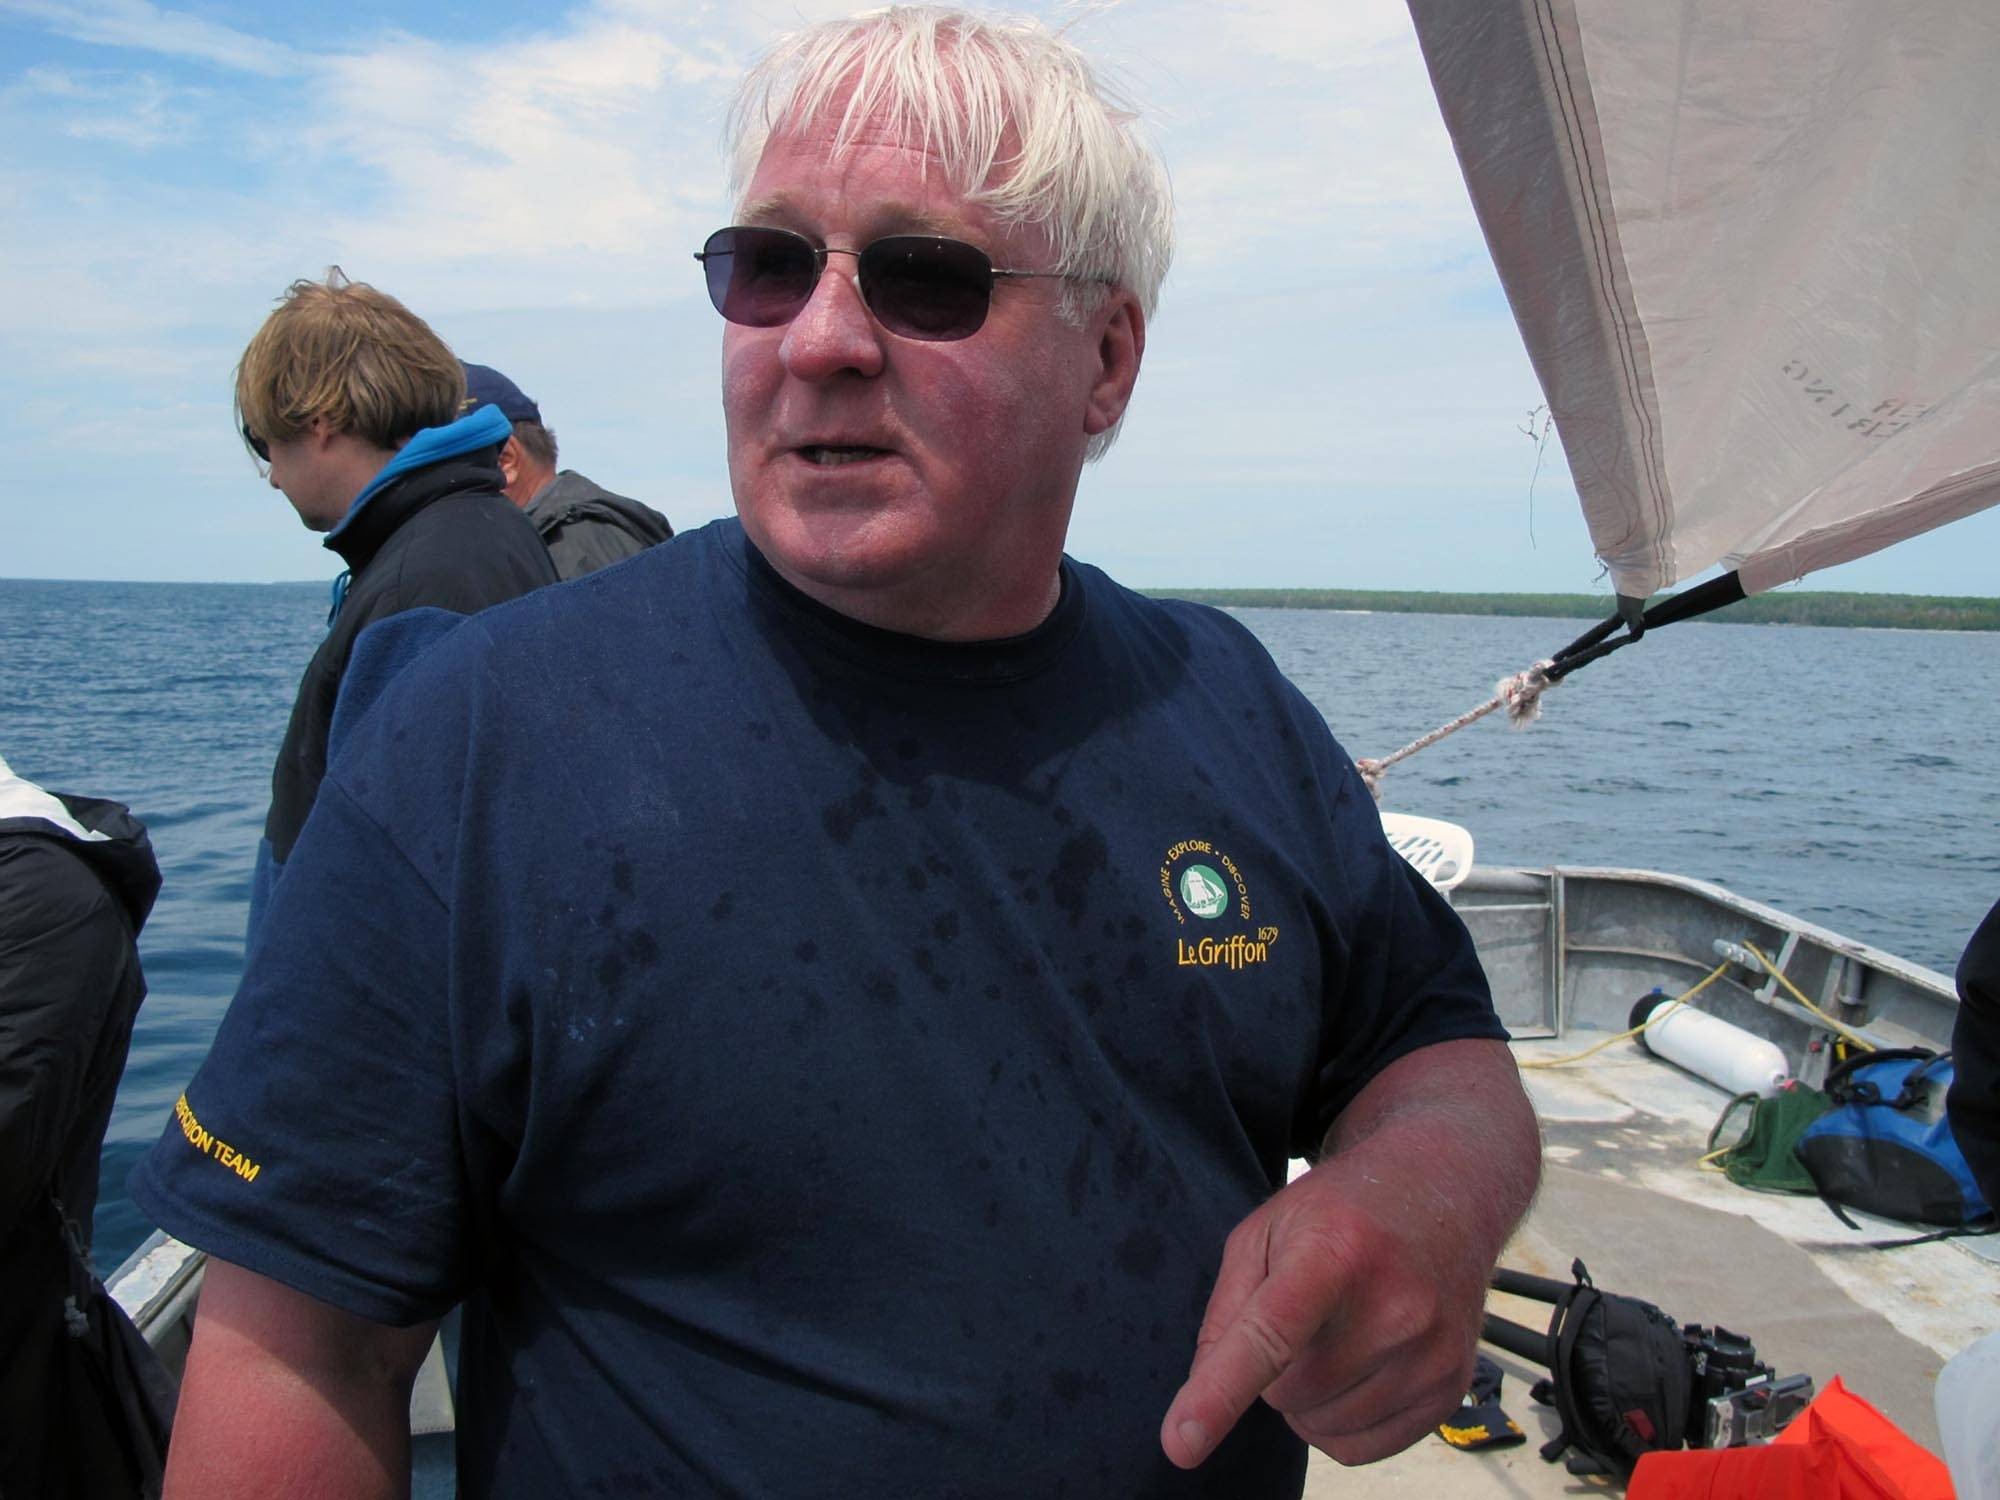 Explorer Steve Libert says a debris field at the bottom of Lake Michigan may be the remains of the long-lost Griffin, a vessel commanded by a 17th-century French explorer.